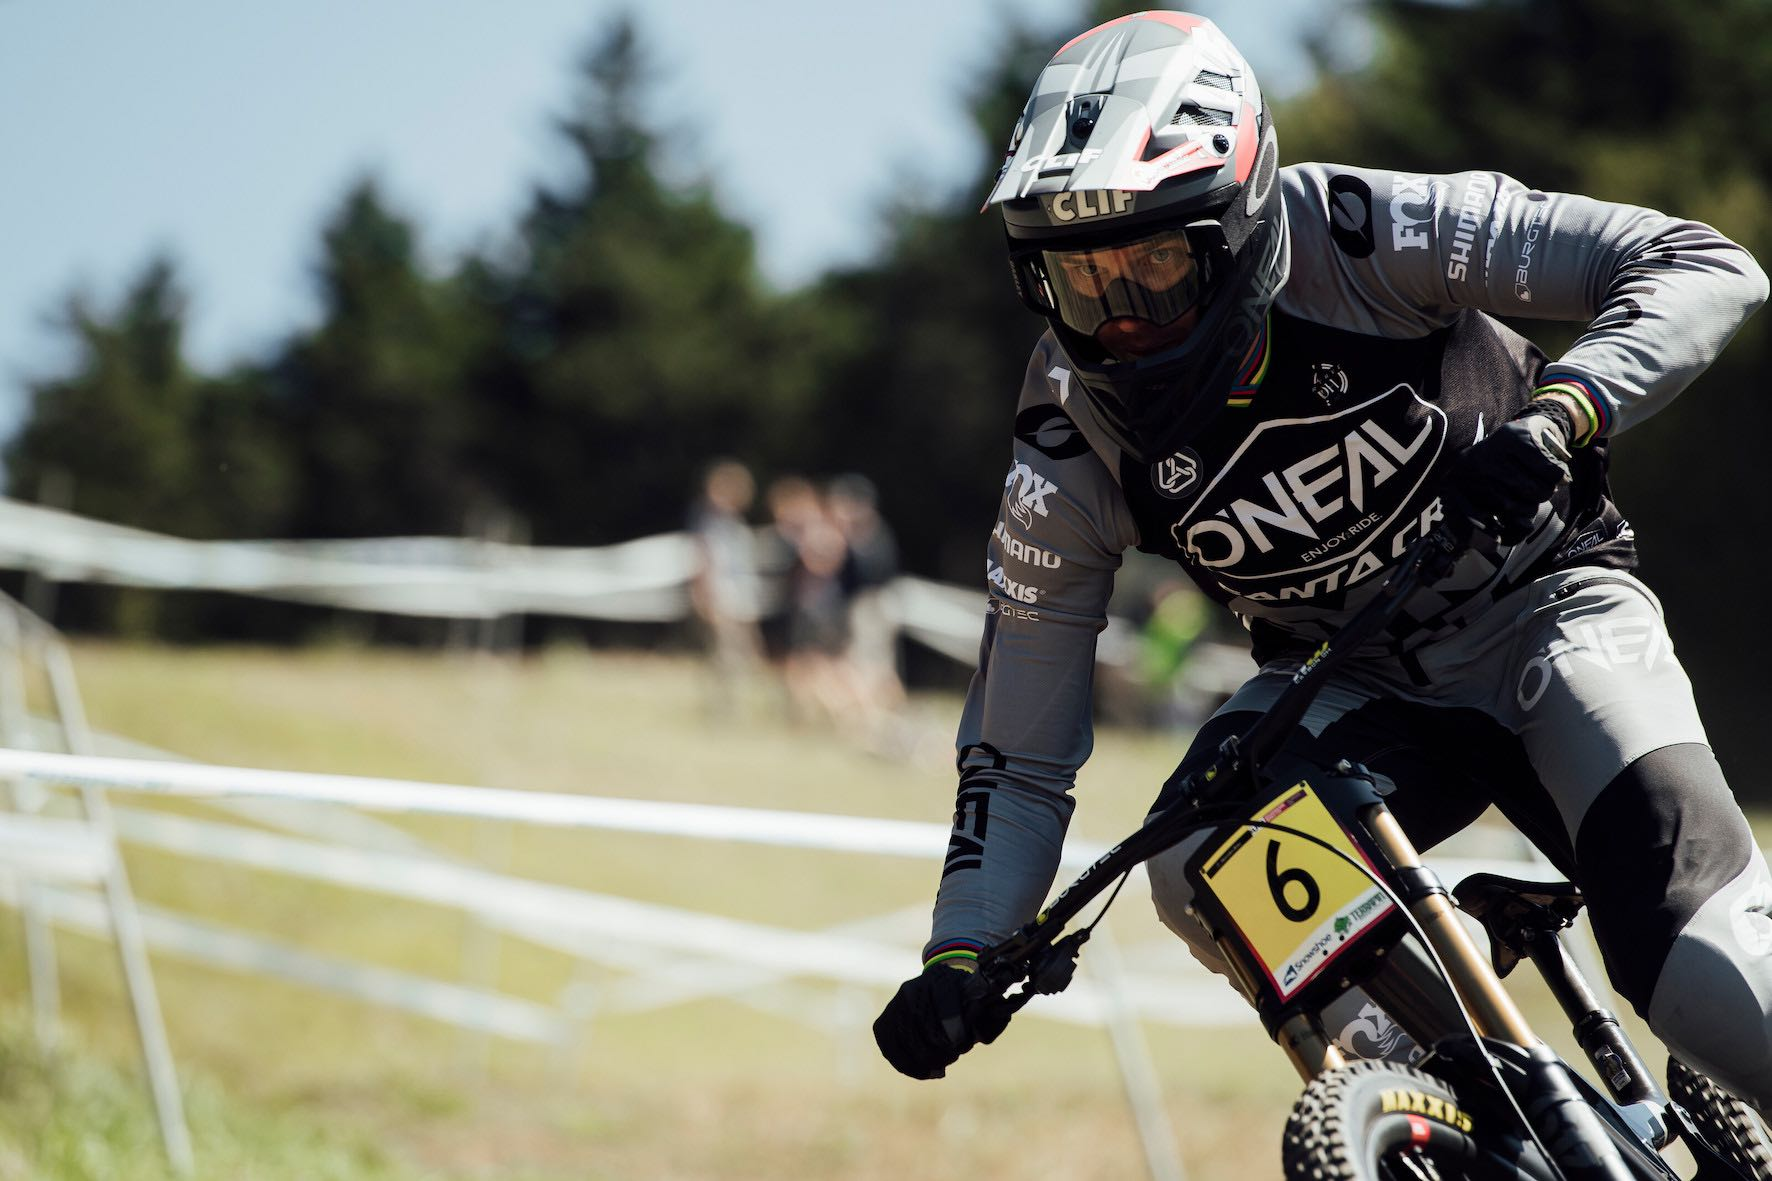 Greg Minnaar racing the 2019 UCI Downhill MTB World Cup in Snowshoe